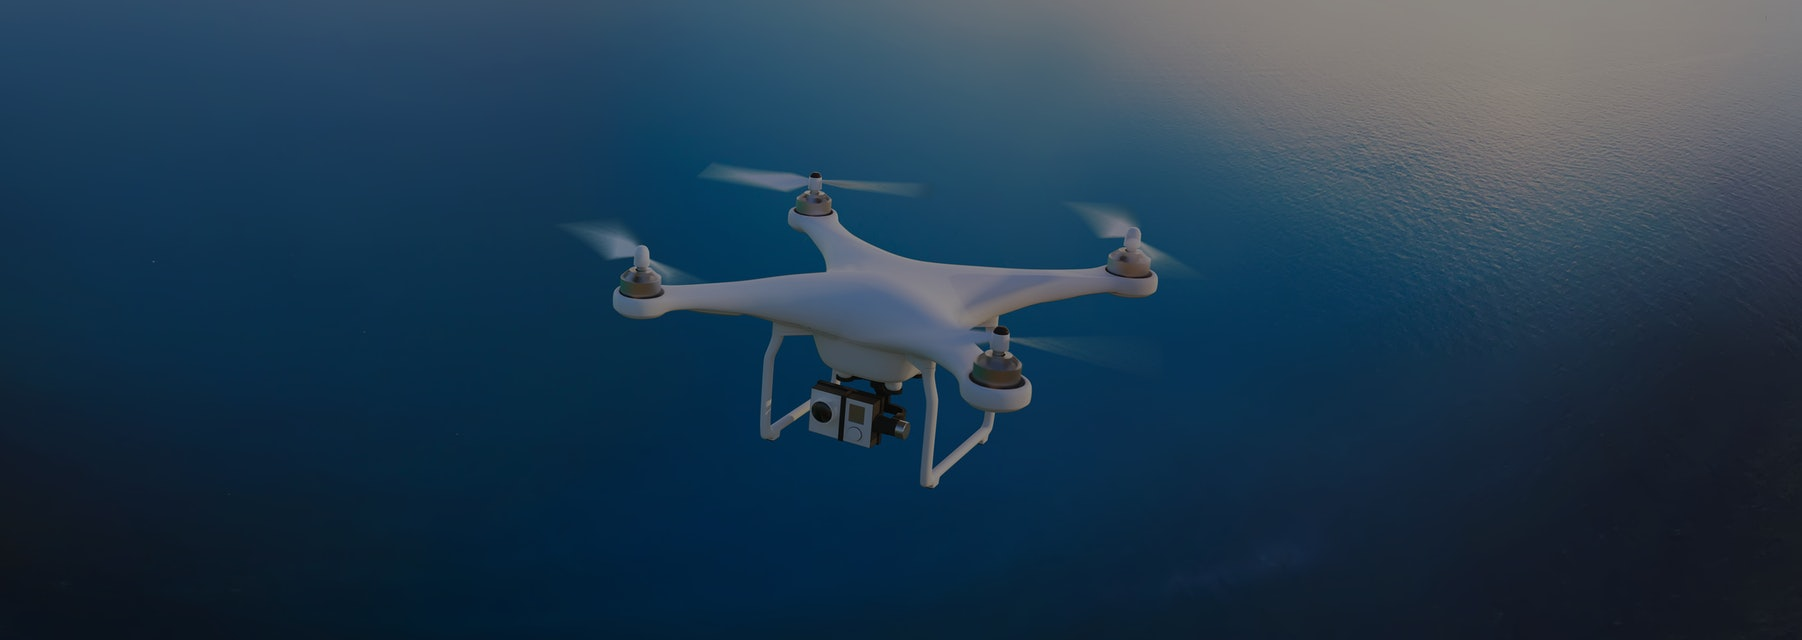 Electric drone flies in the sky. 3D illustration. Drone: 3d-model. Background: photo-panorama.